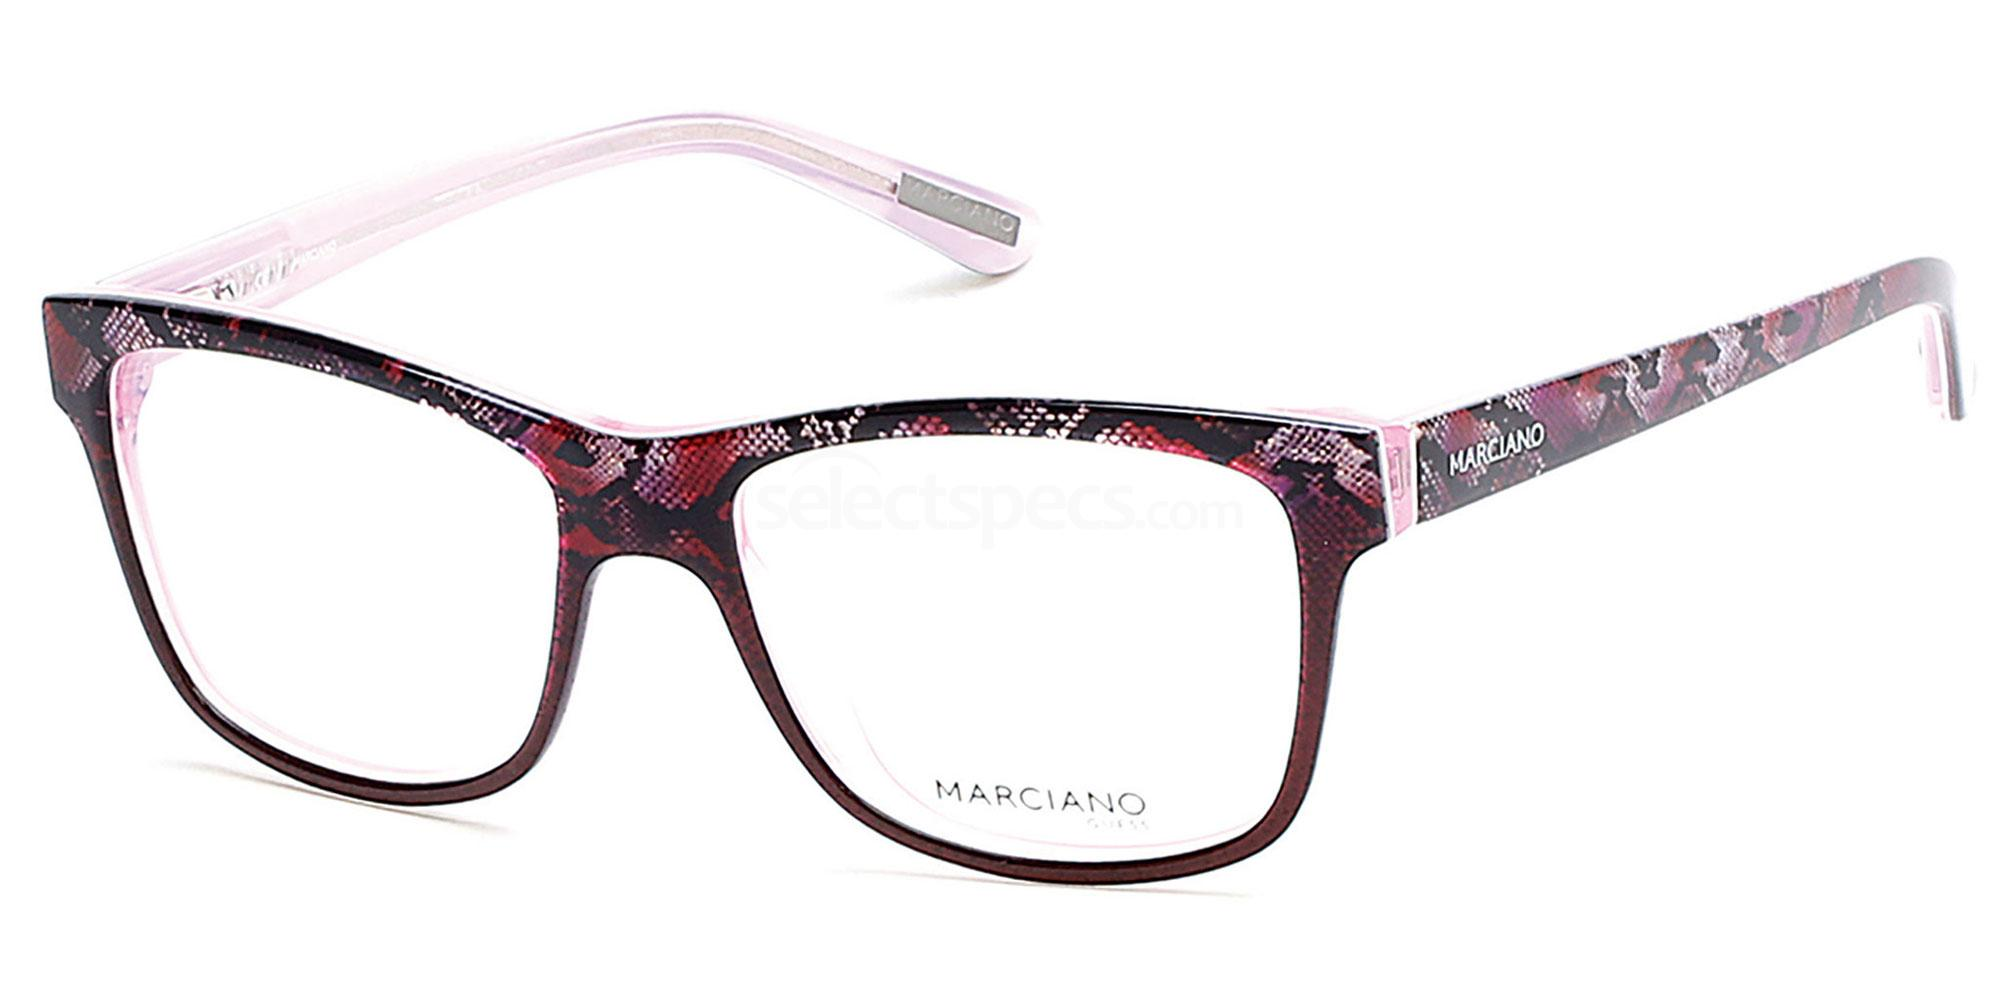 083 GM0279 Glasses, Guess by Marciano